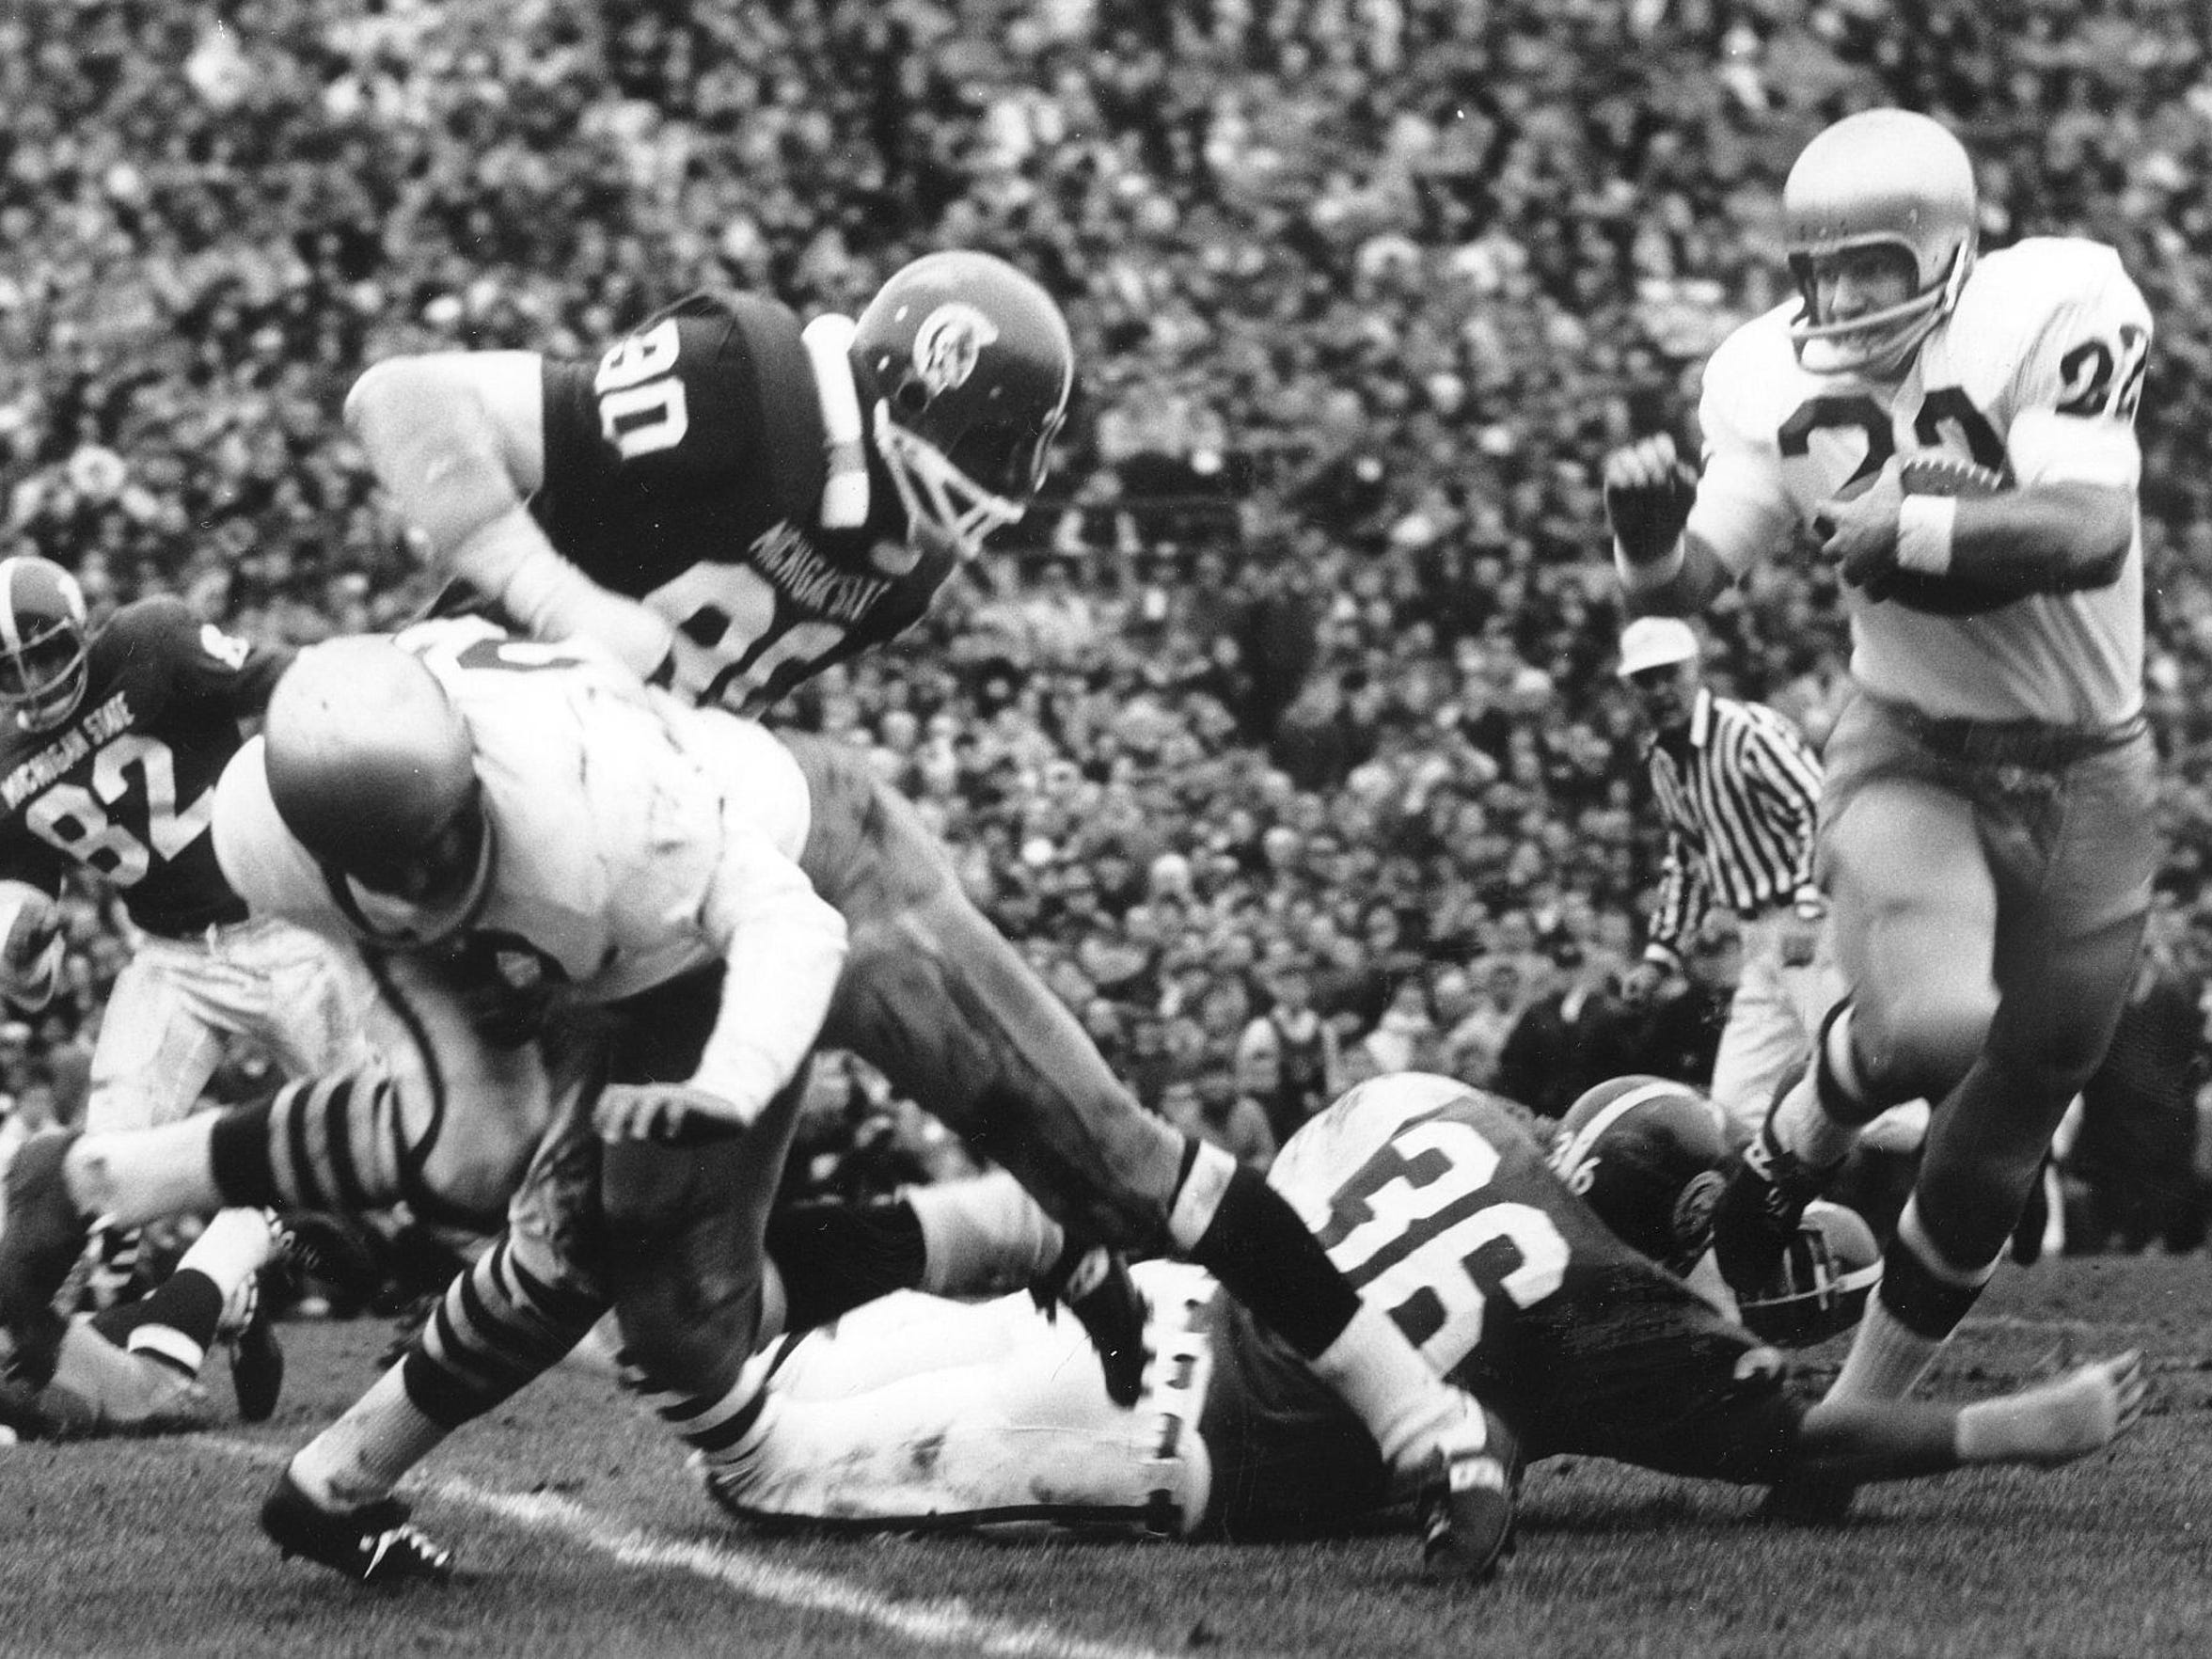 Notre Dame's Dave Haley carries the ball against Michigan